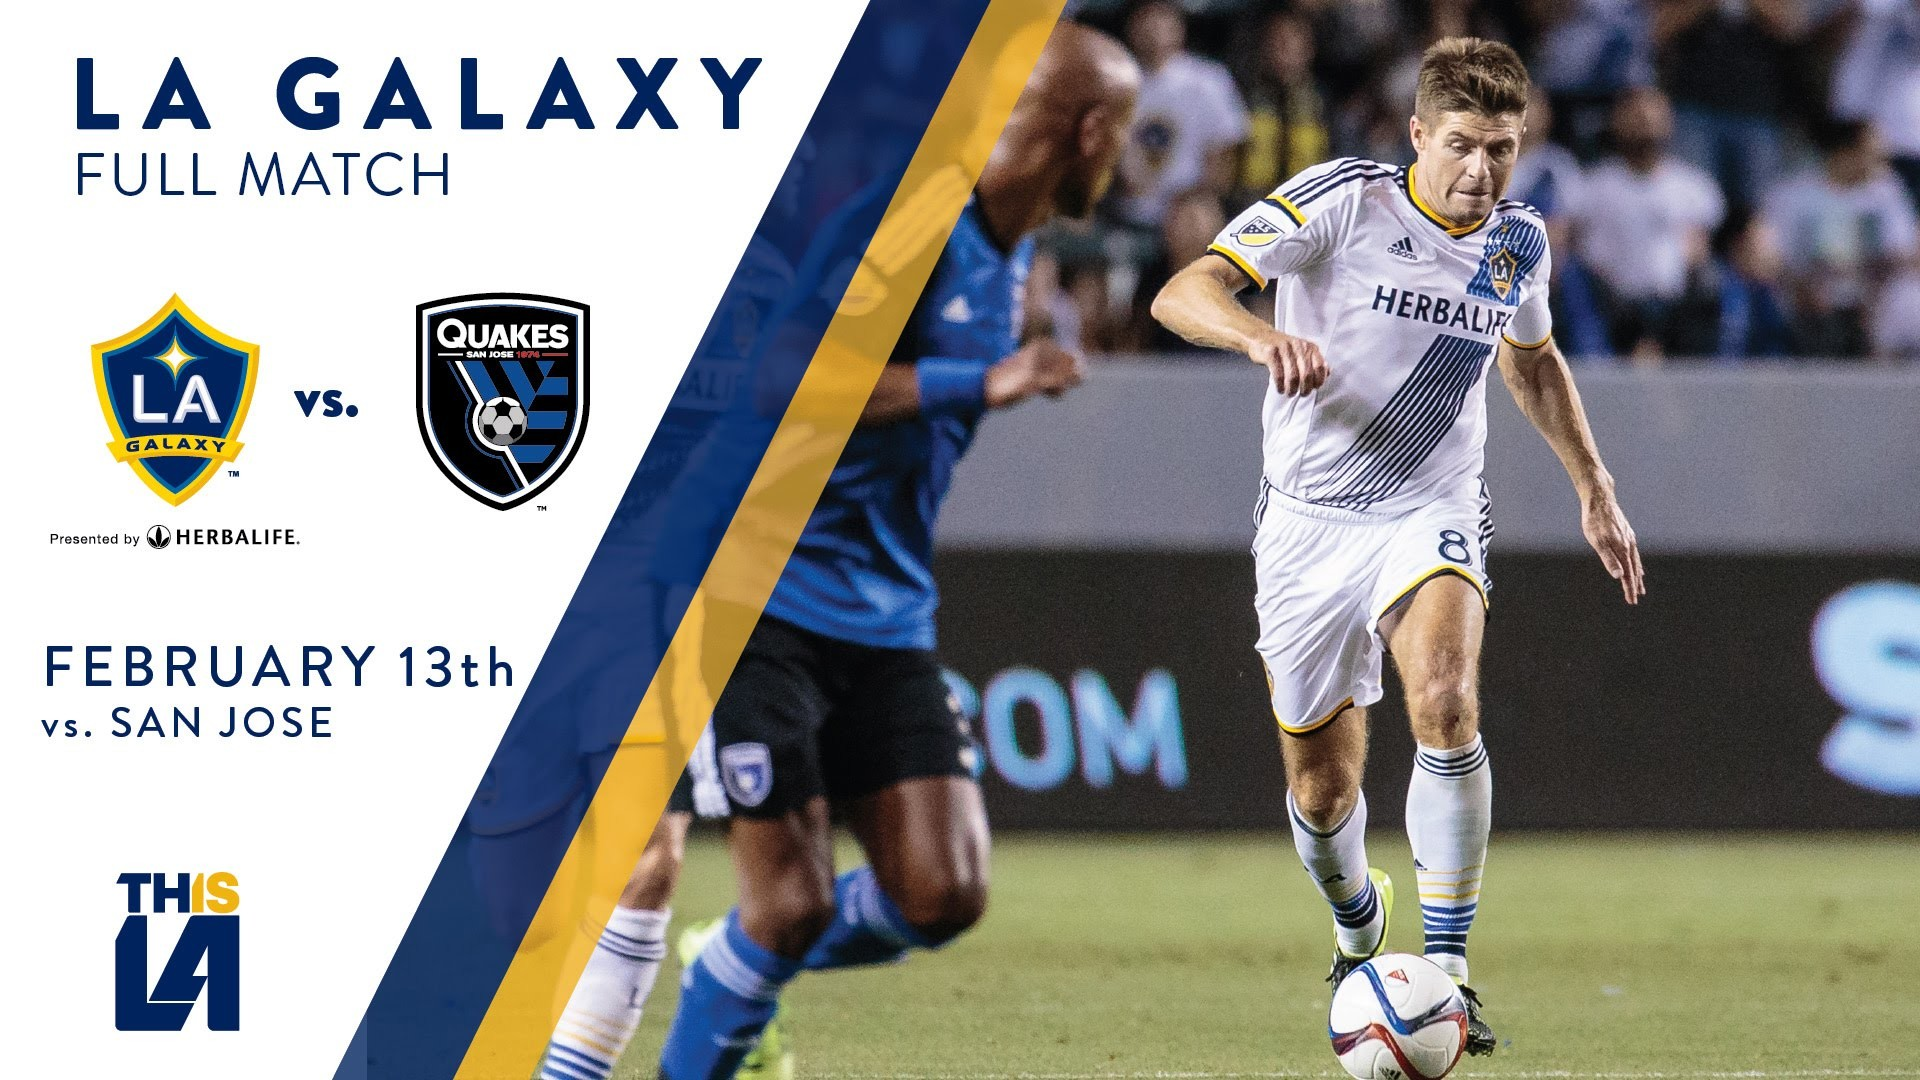 Res: 1920x1080, FULL MATCH: LA Galaxy vs. San Jose Earthquakes | February 13, 2016 - YouTube